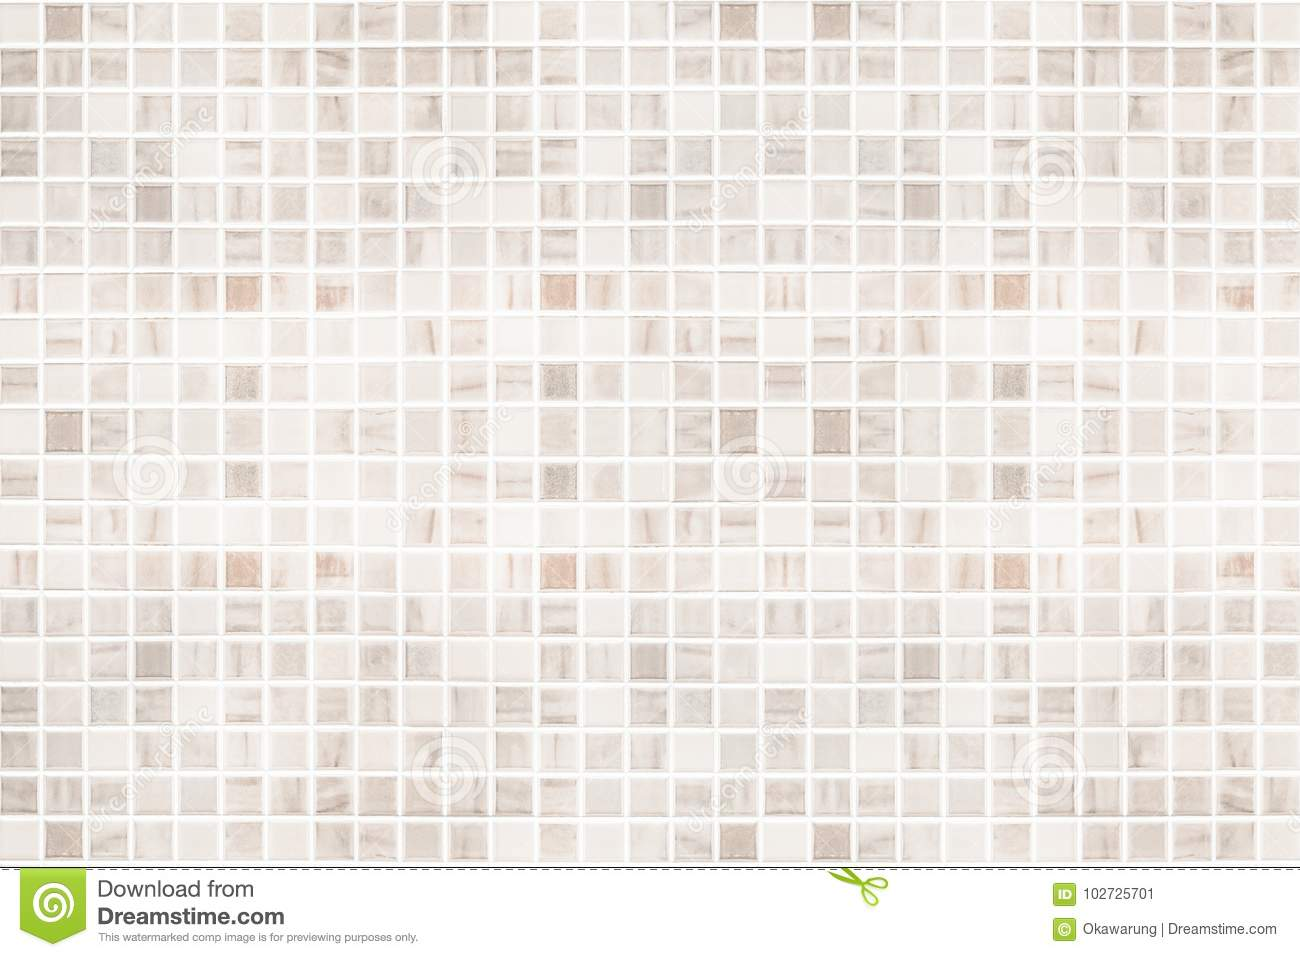 White Tile Wall Texture Background. Stock Image - Image of close ...